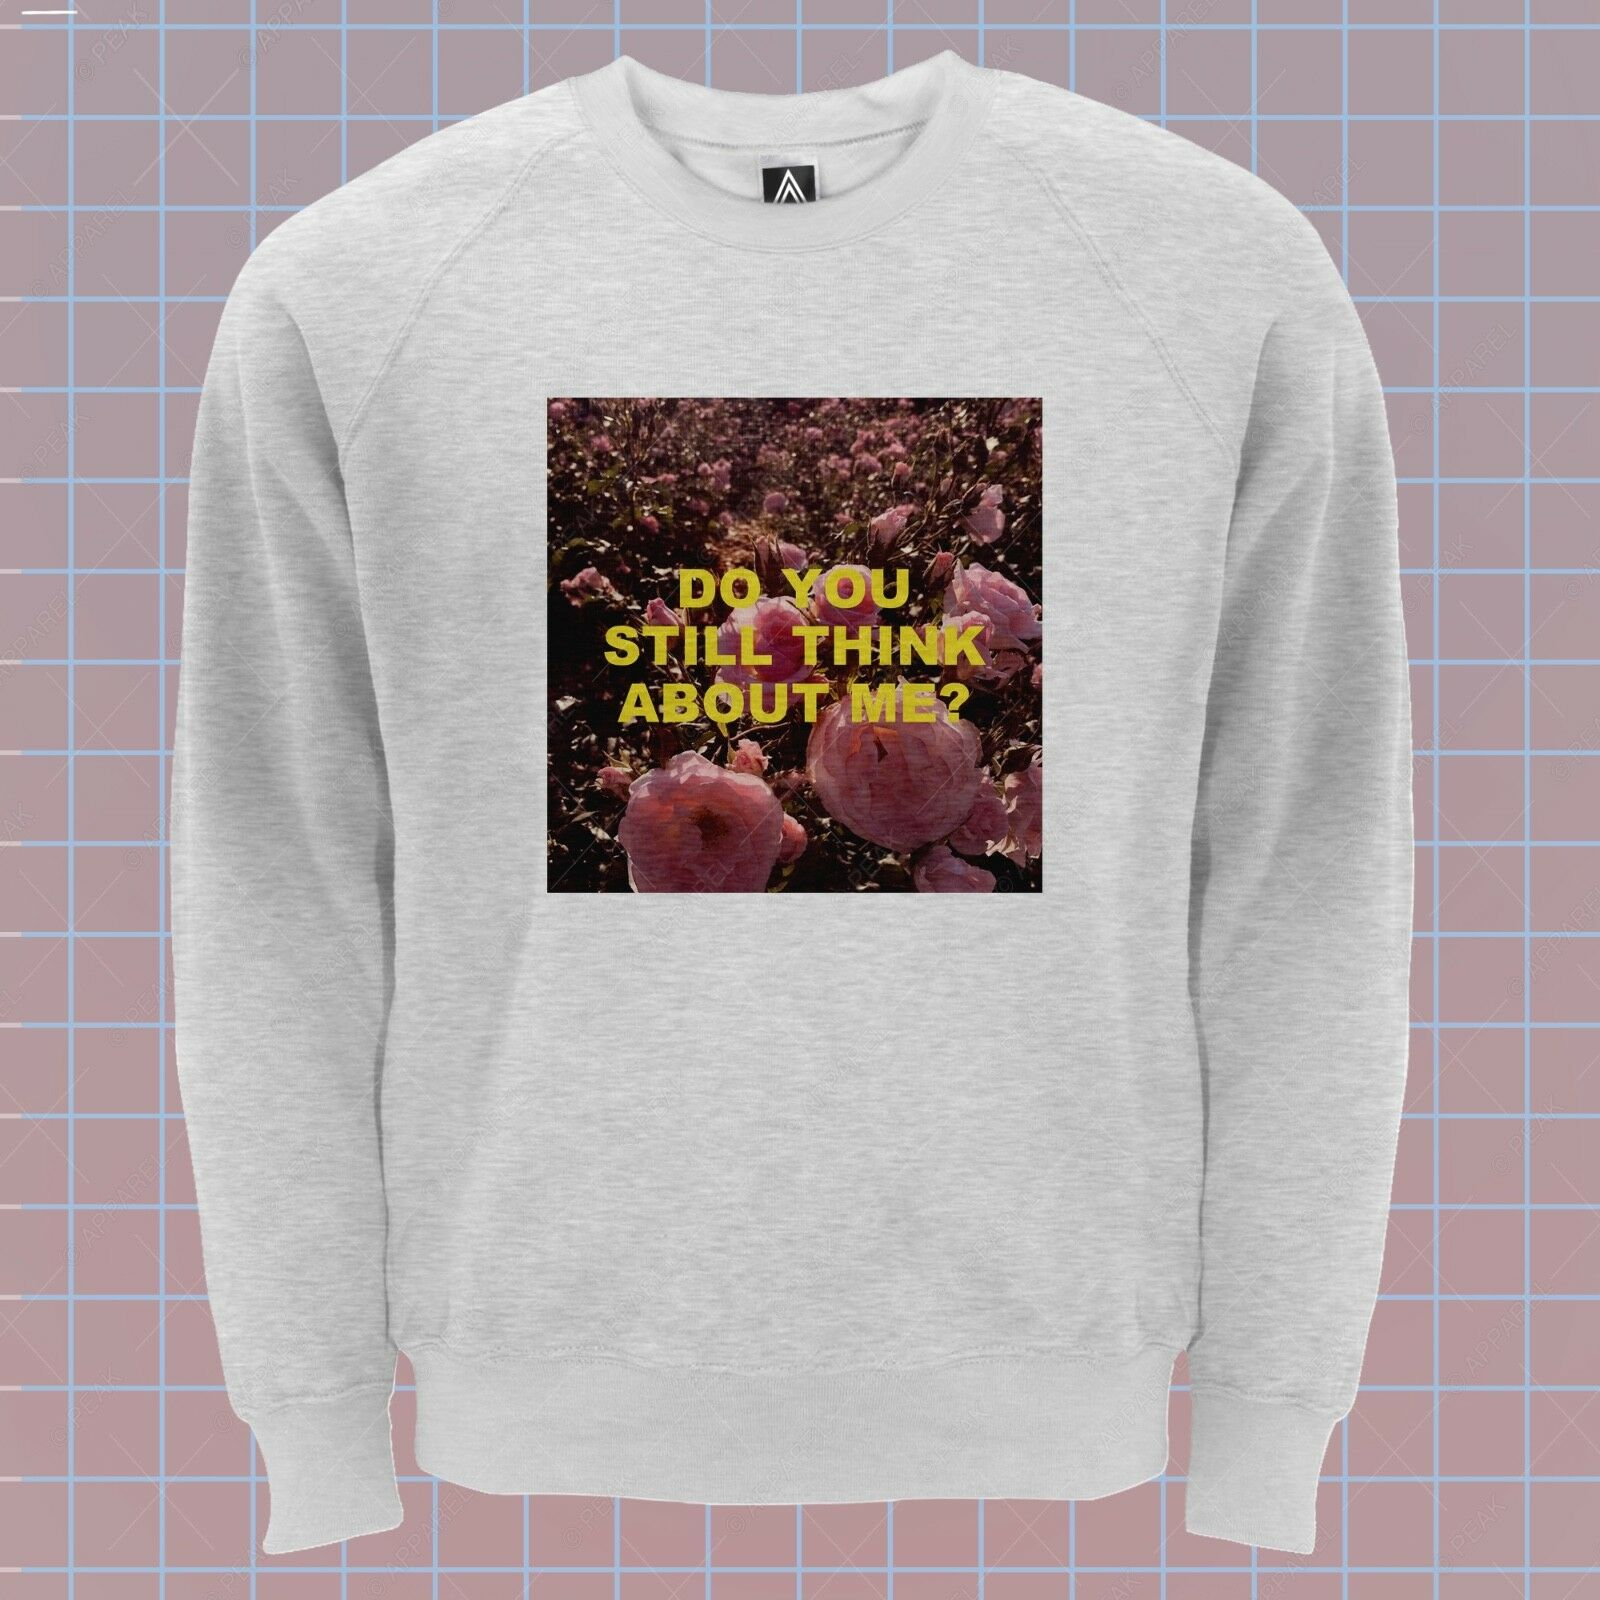 Still Think Sweatshirt Feelings pinks Hipster Jumper Retro Slogan Breakup Top